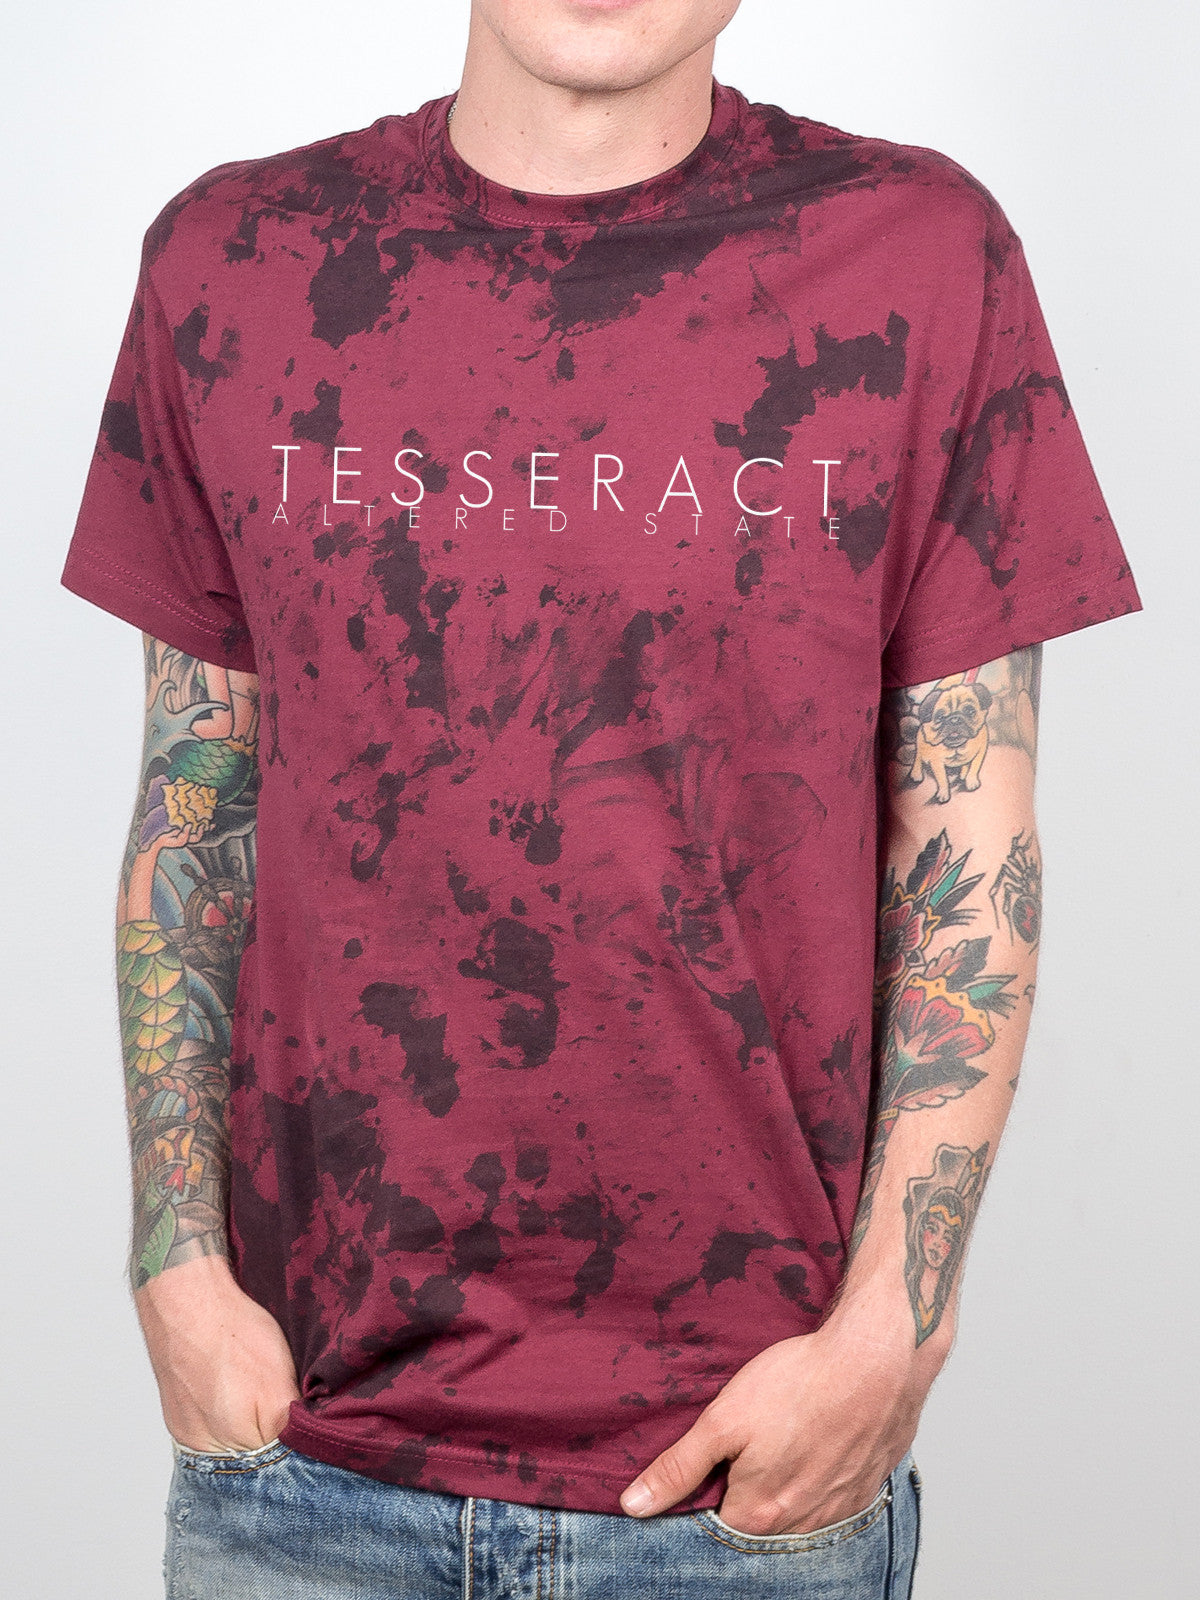 TesseracT - Altered State Dye Shirt